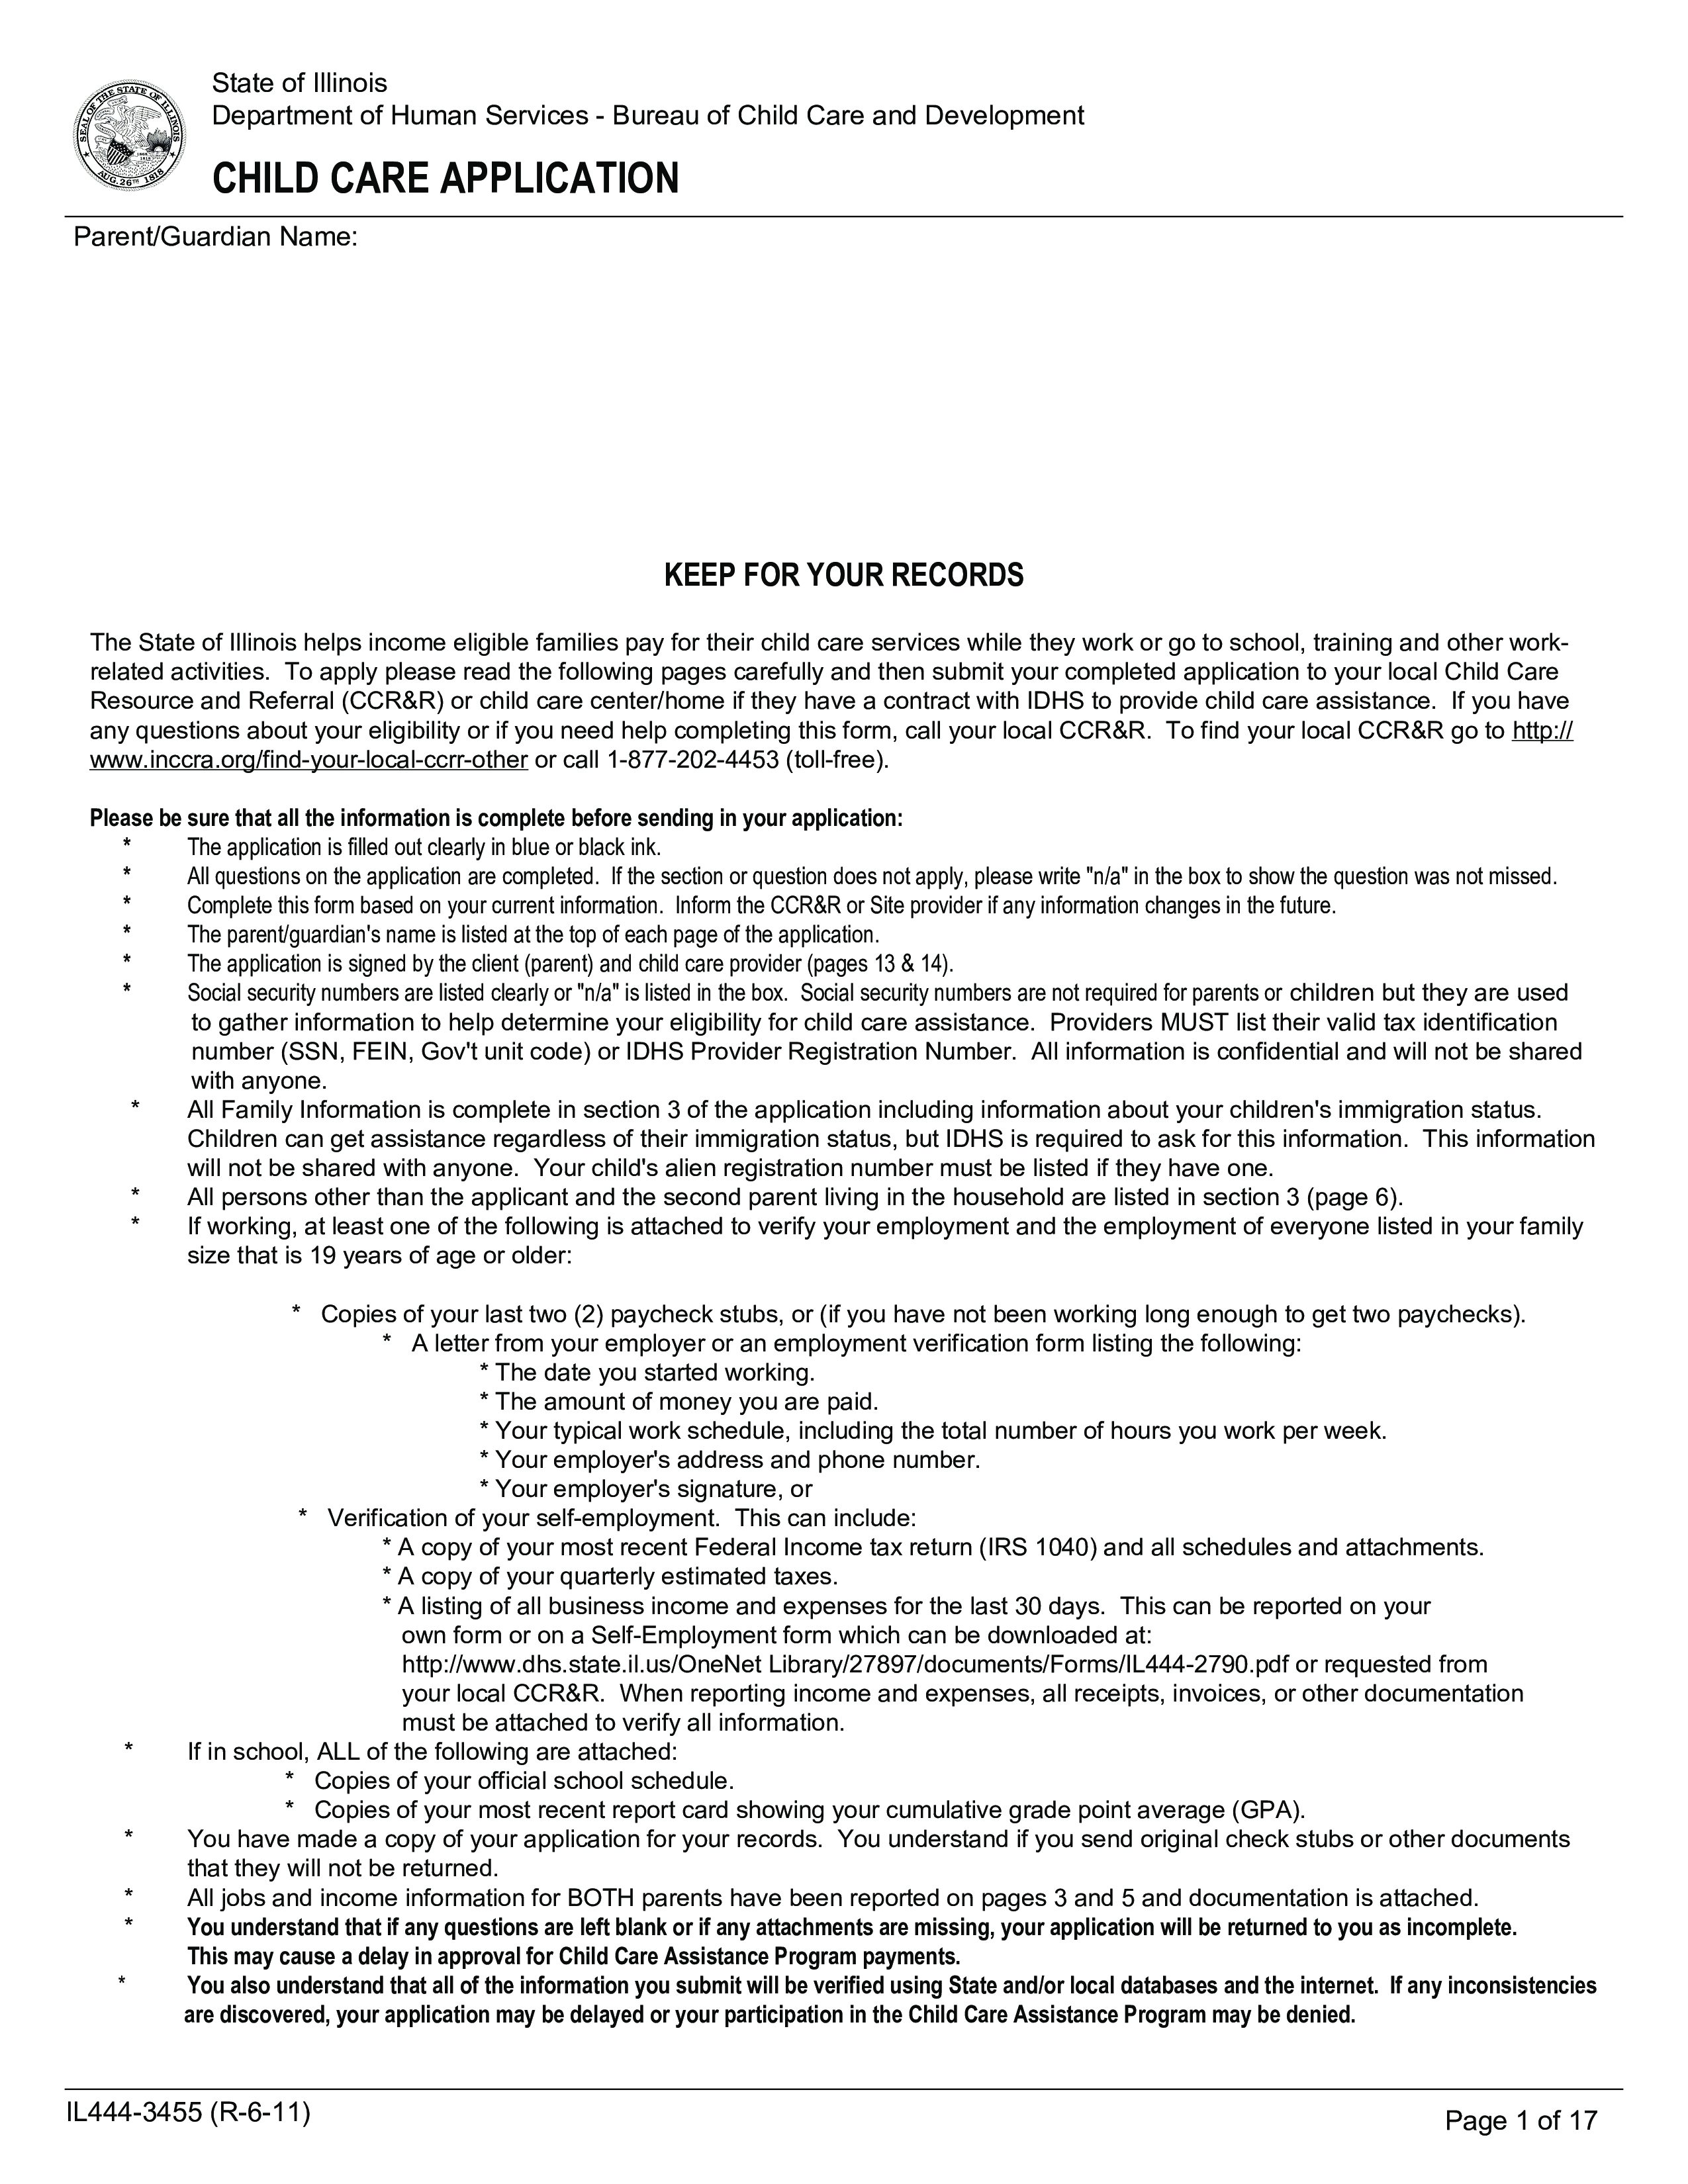 Free Child Care Professional Job Application | Templates at ...